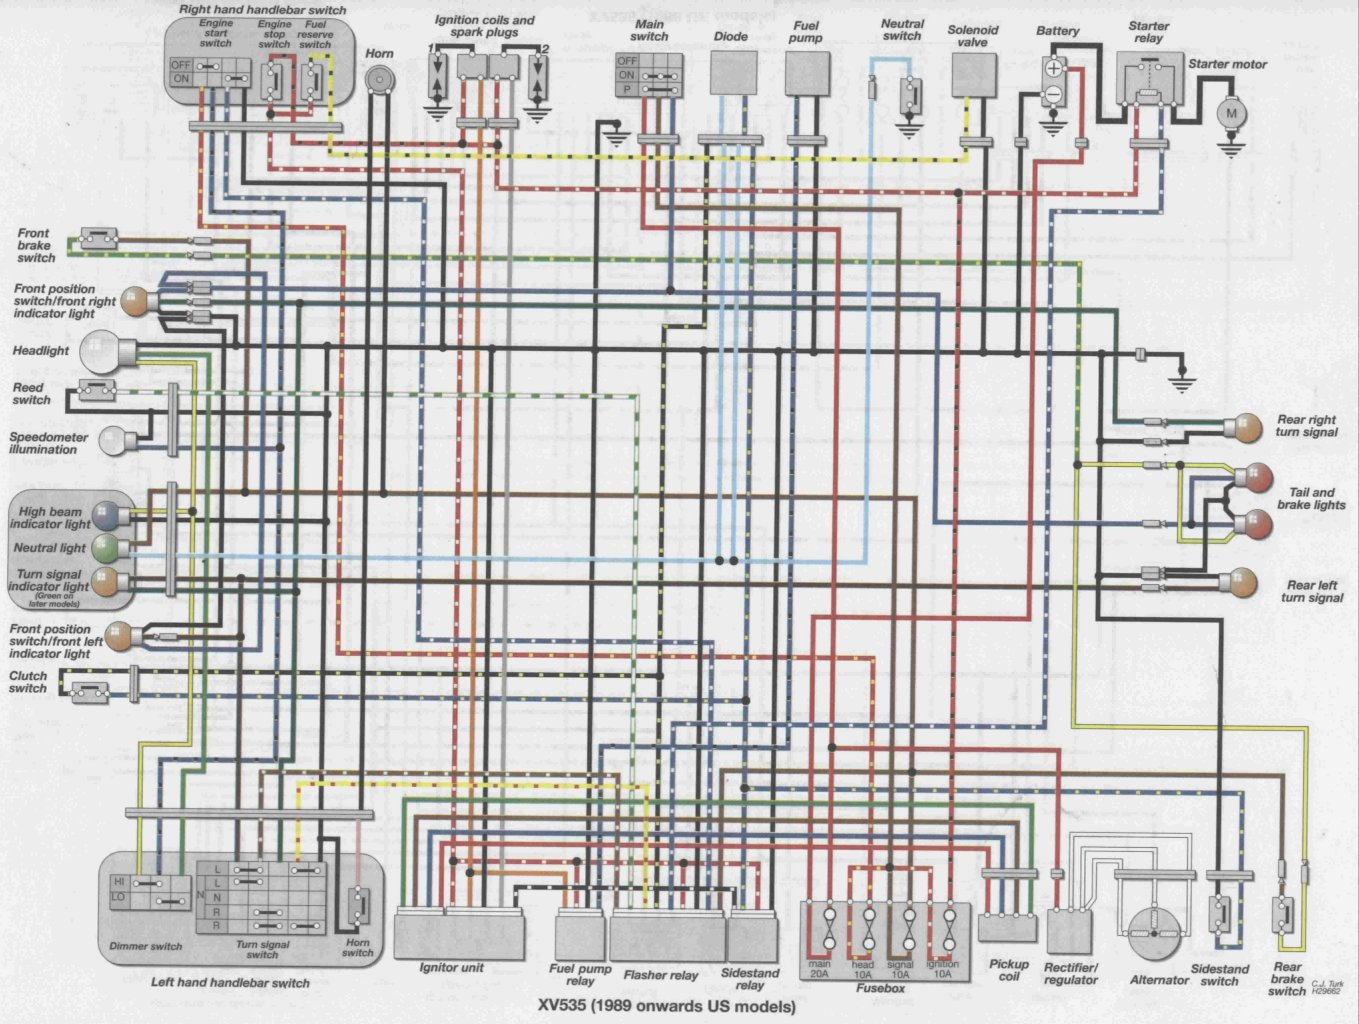 89_96_us_XV535 viragotechforum com \u2022 view topic xv535sh wiring virago wiring diagram at gsmx.co